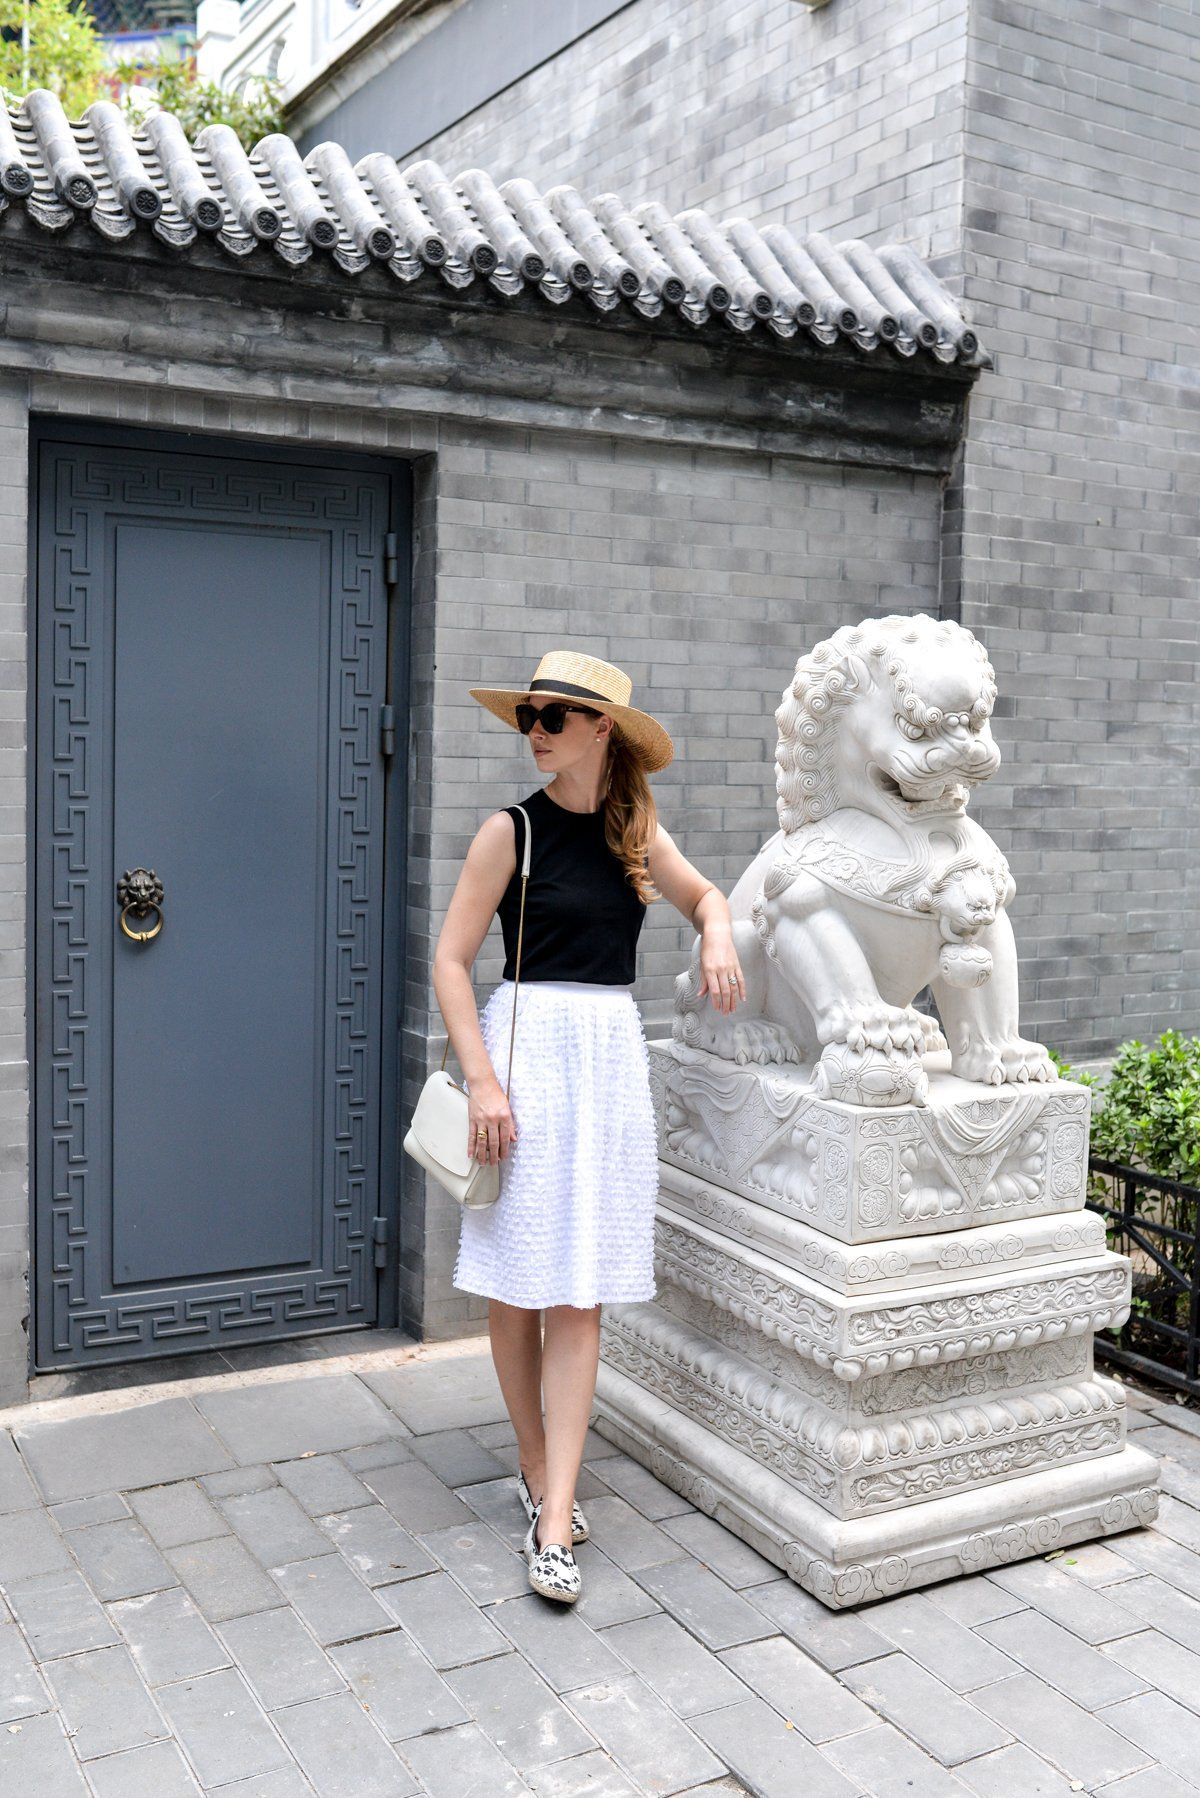 Stacie-Flinner-Opposite-House- Beijing-59